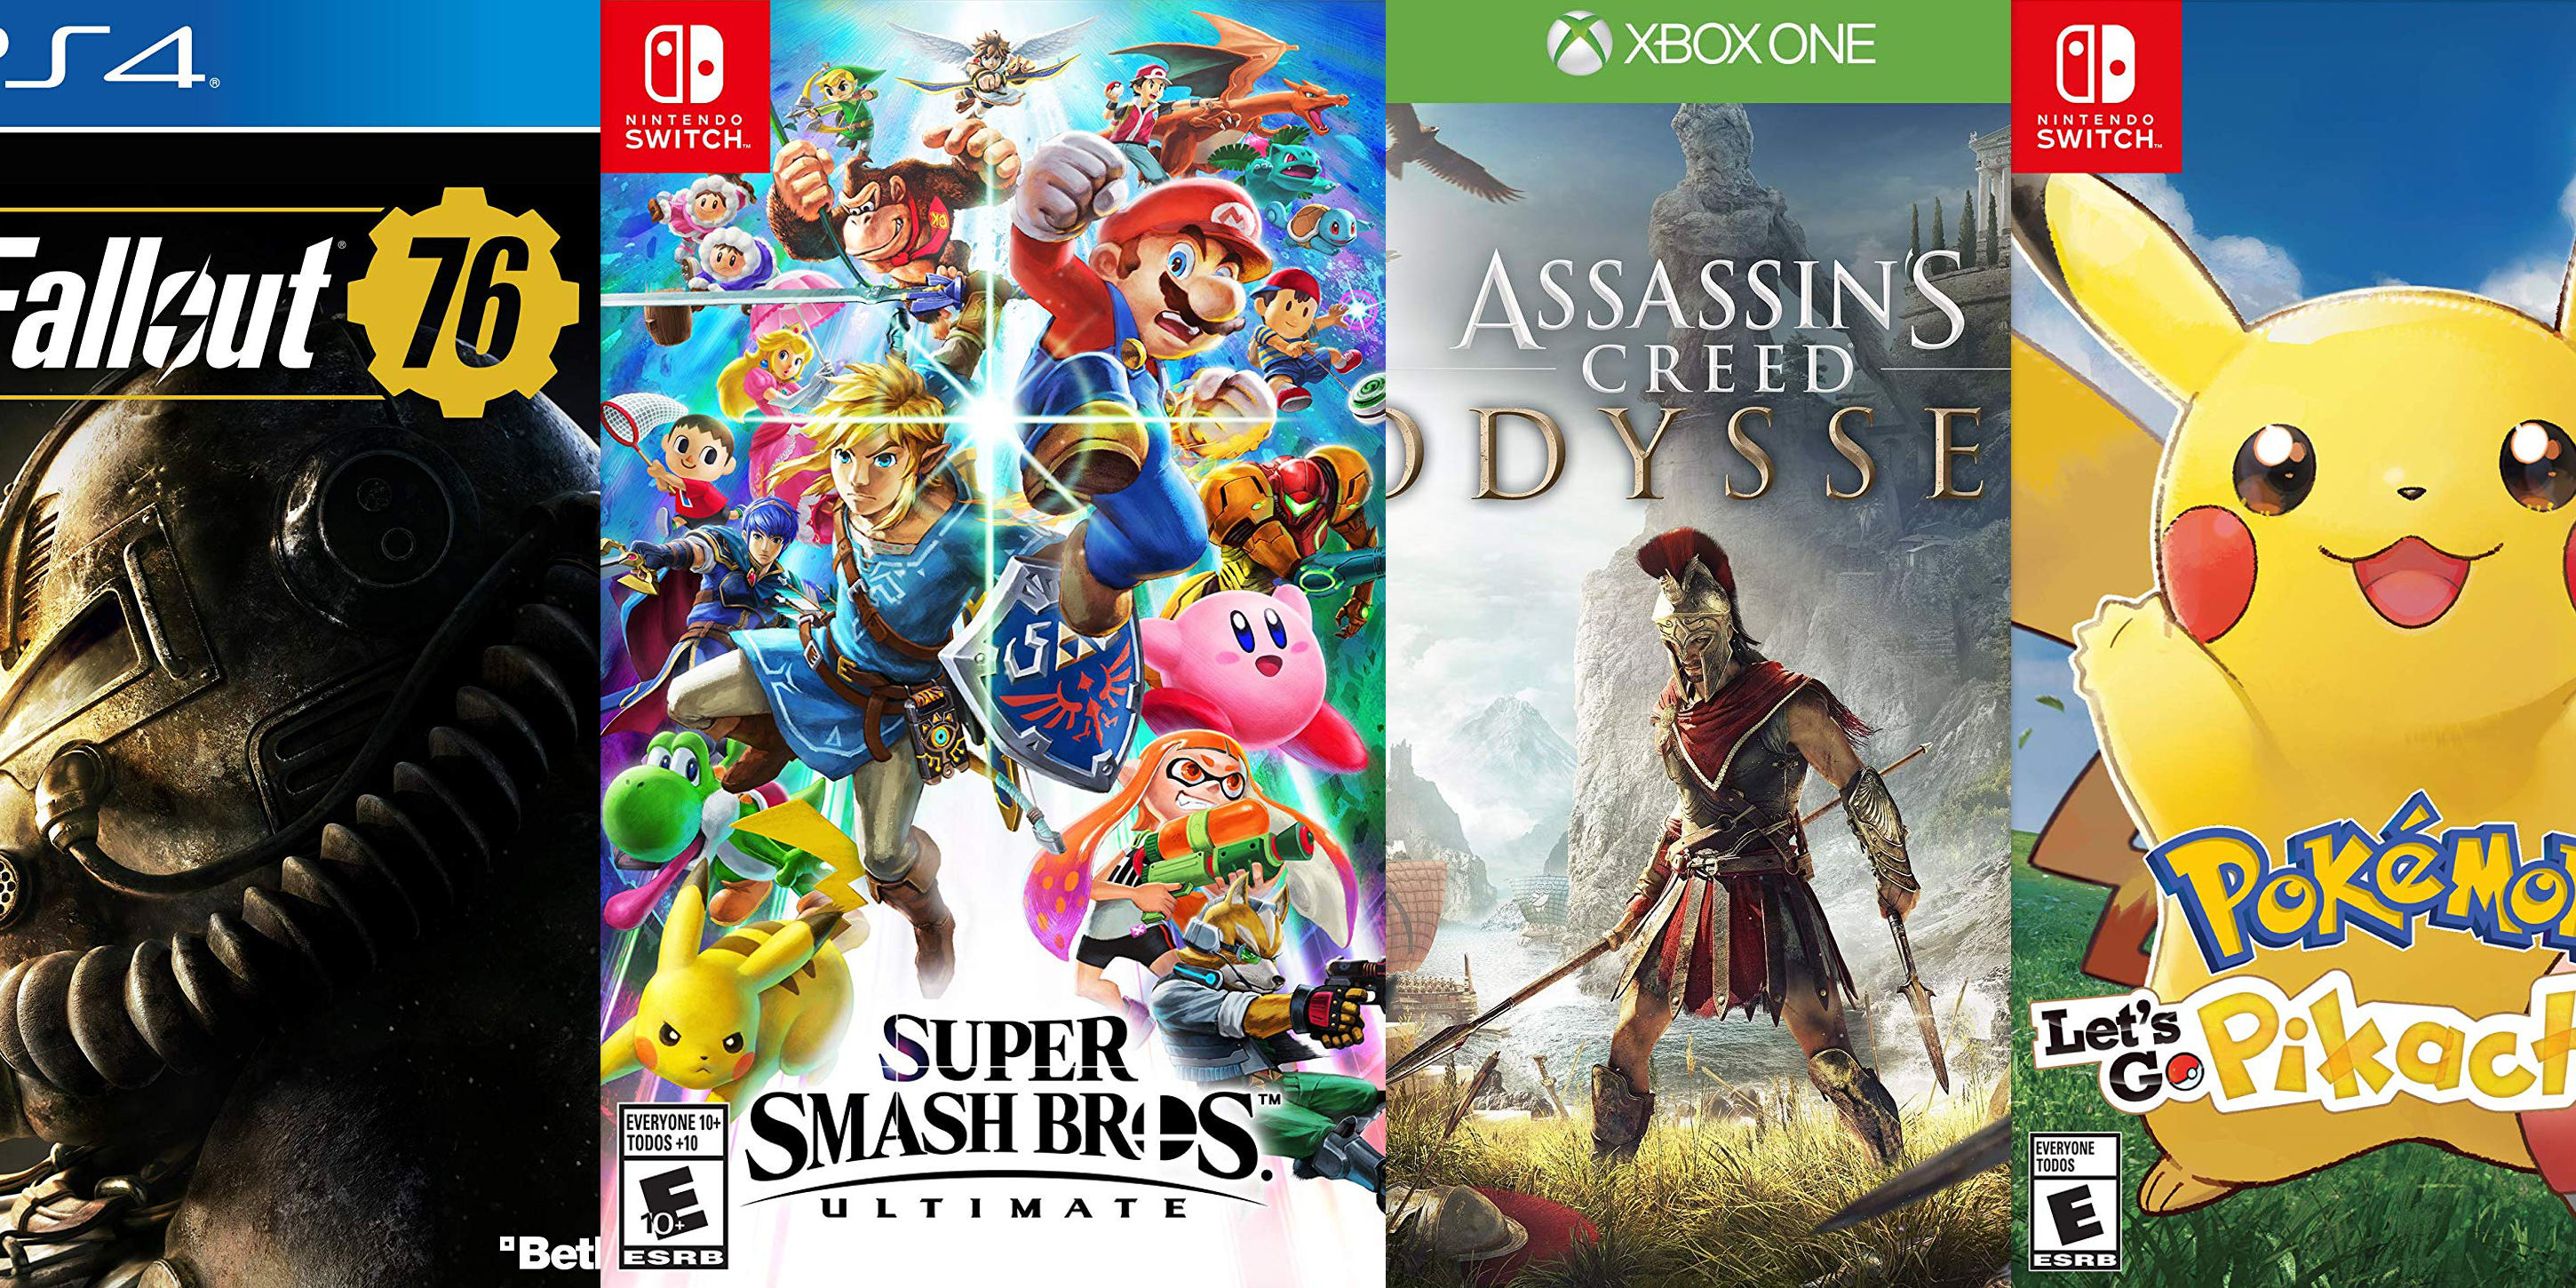 Todays Best Game Deals Forza Horizon 4 35 Mega Man X Legacy 1 2 3ds Metroid Samus Returns Special Edition Reg Us Four Must Have Sony Playstation Classic Accessories For An Improved Experience